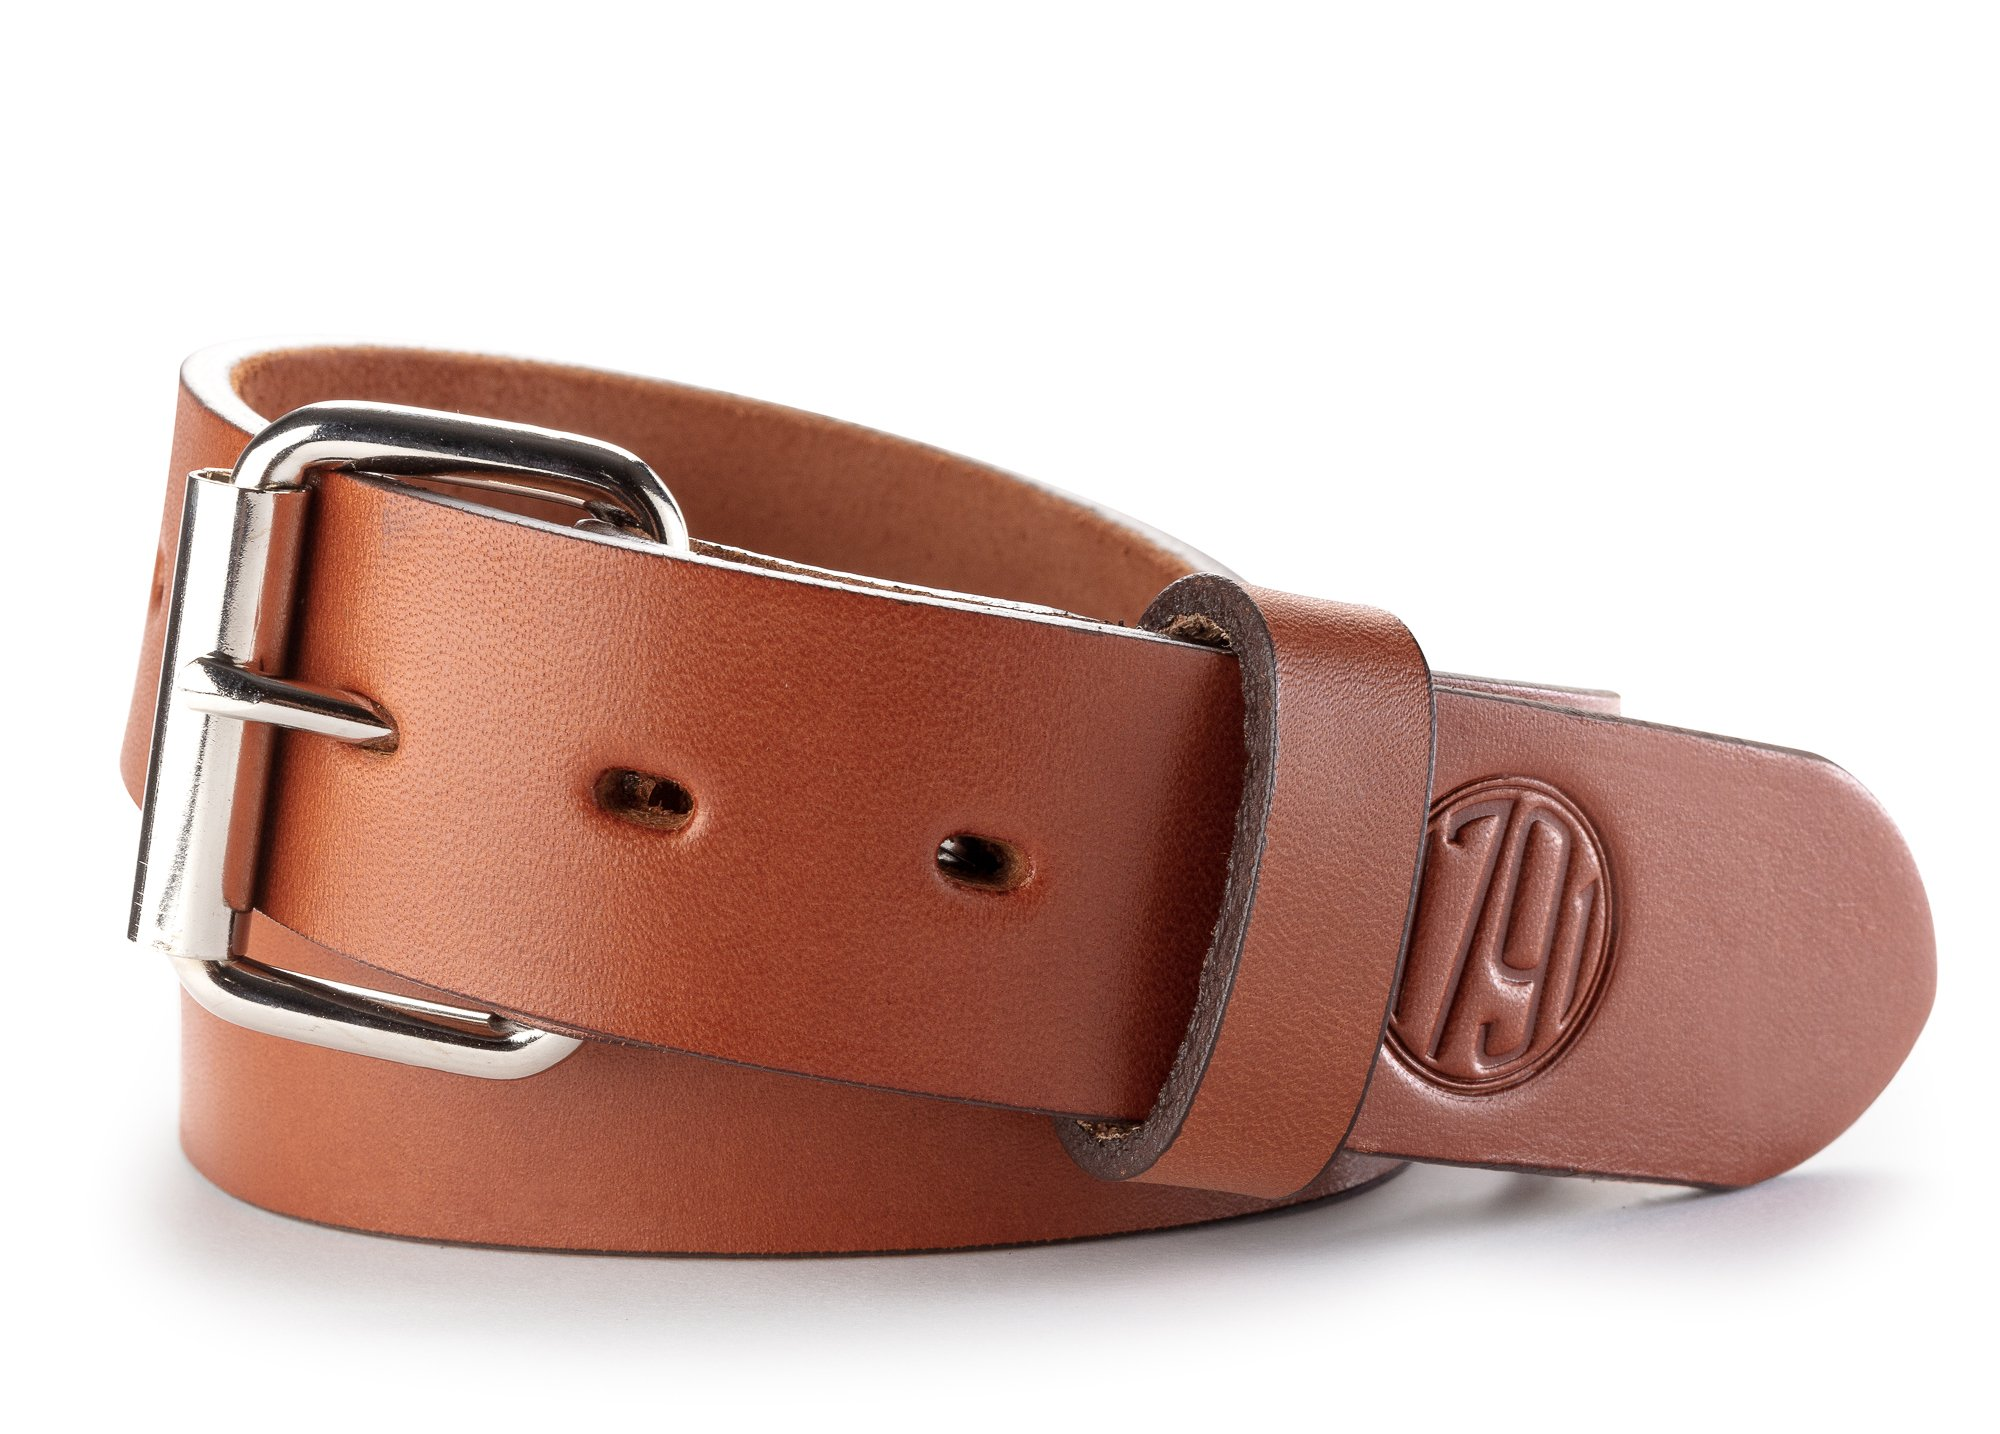 1791 GUNLEATHER BLT-01-40/44-CBR-A Belt, Classic Brown, 44 (Size 40 Pants) by 1791 GUNLEATHER